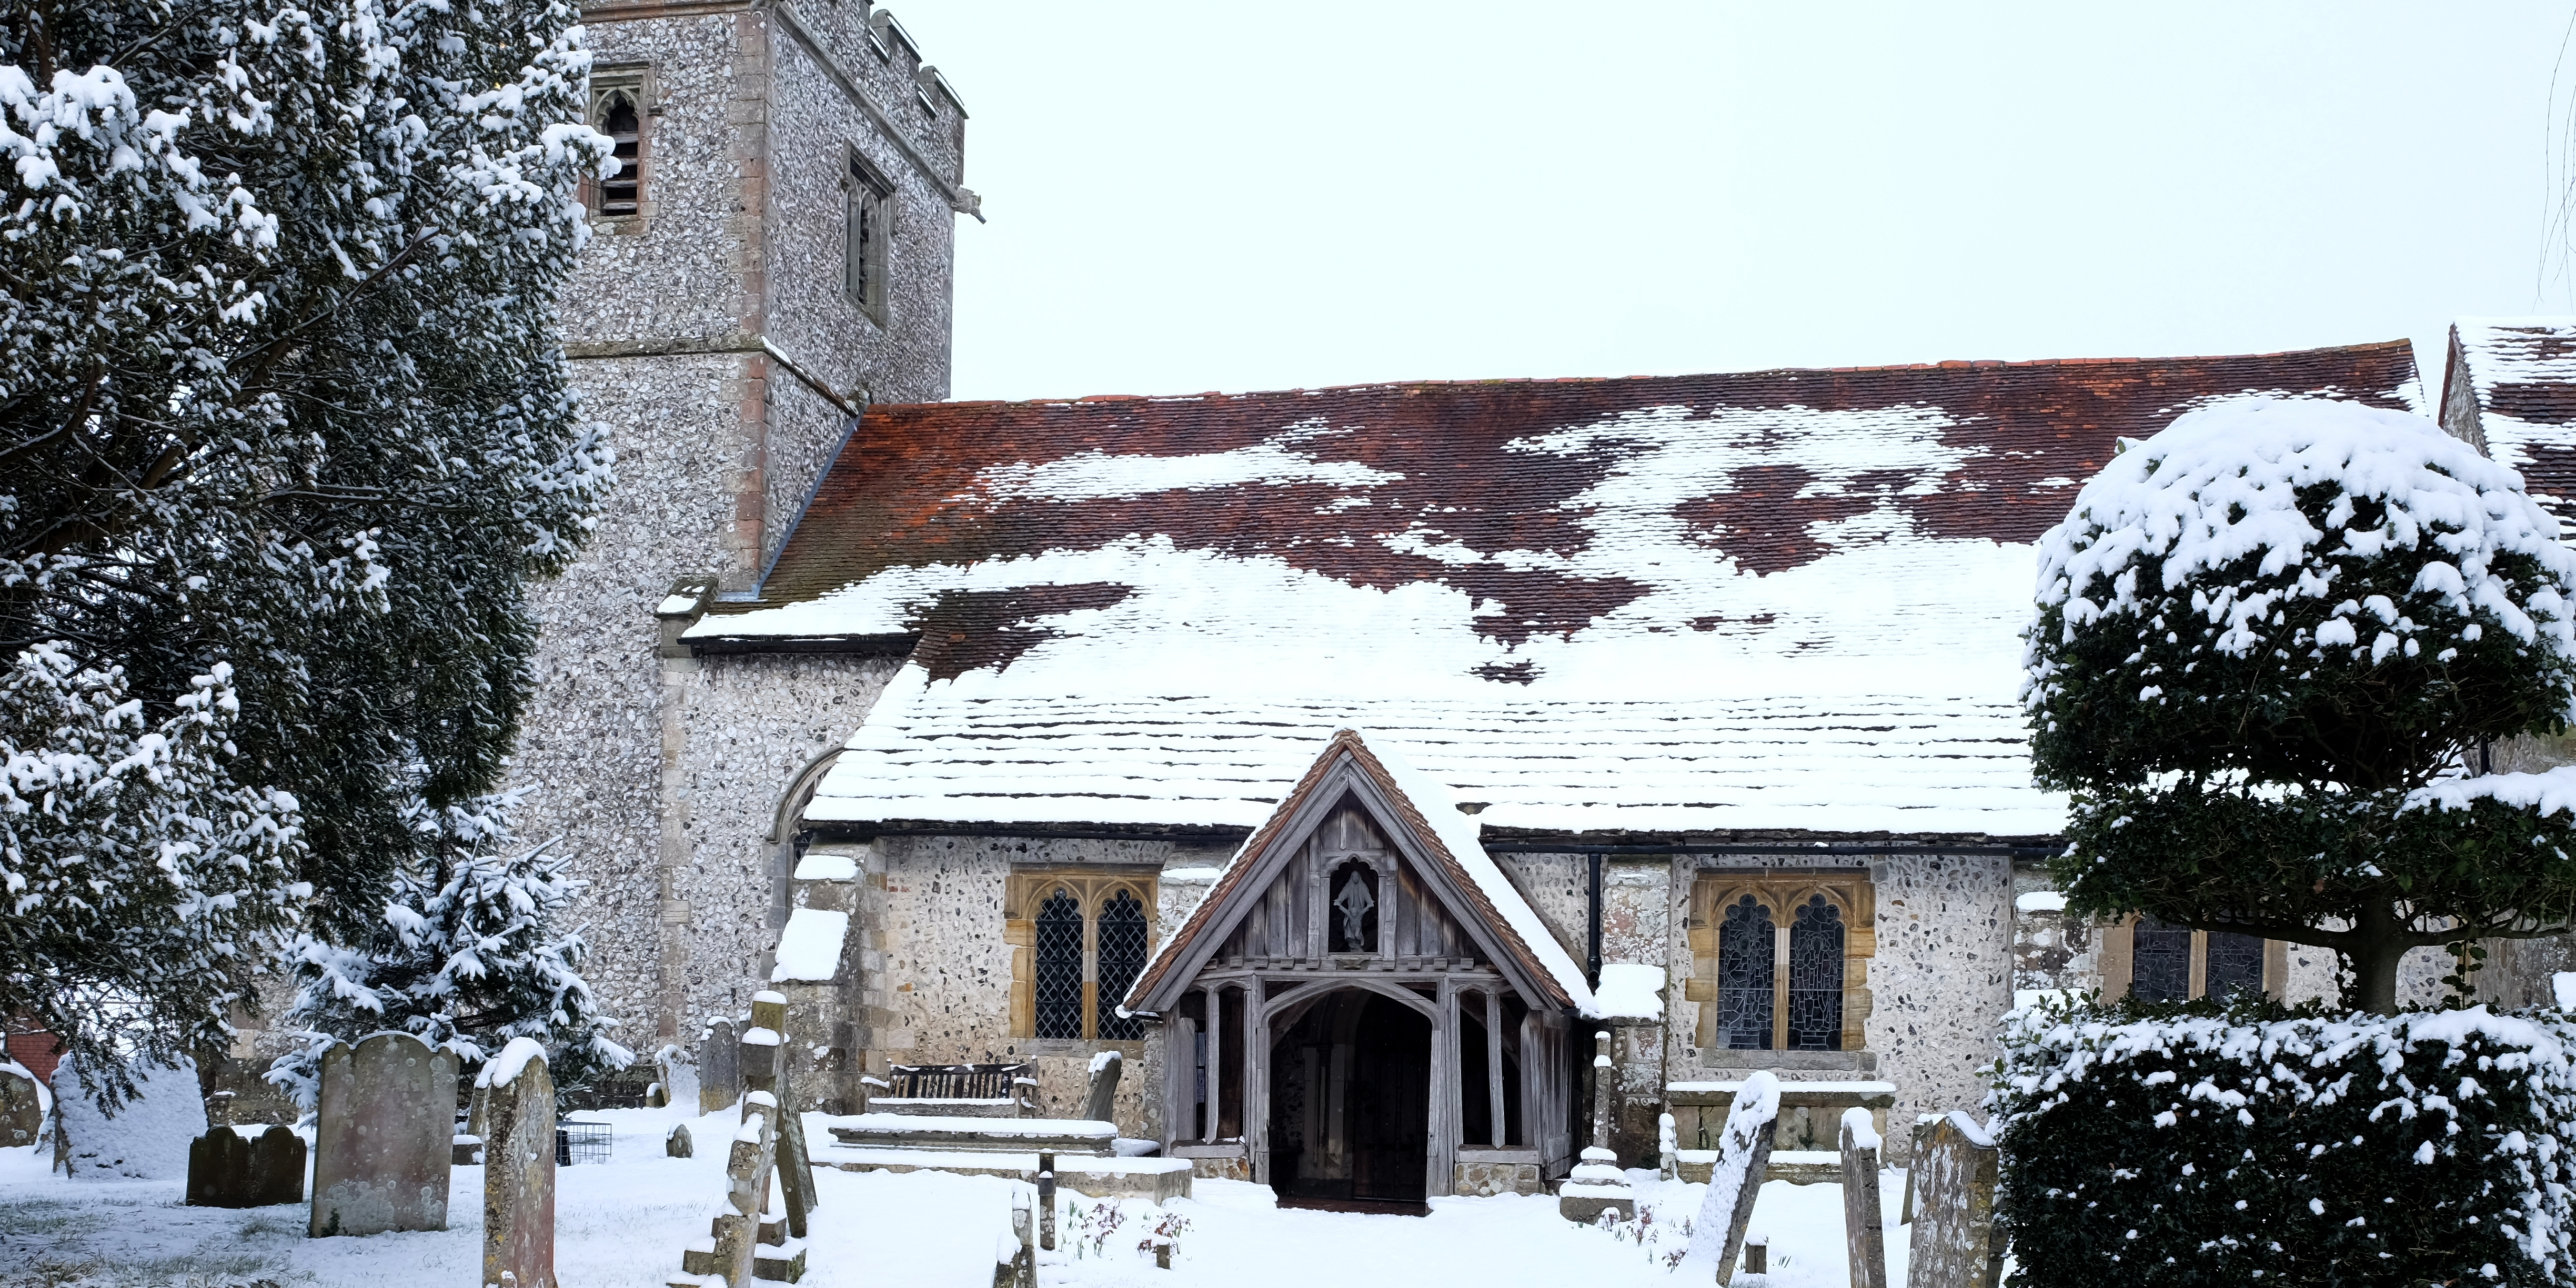 Churchyard covered in snow